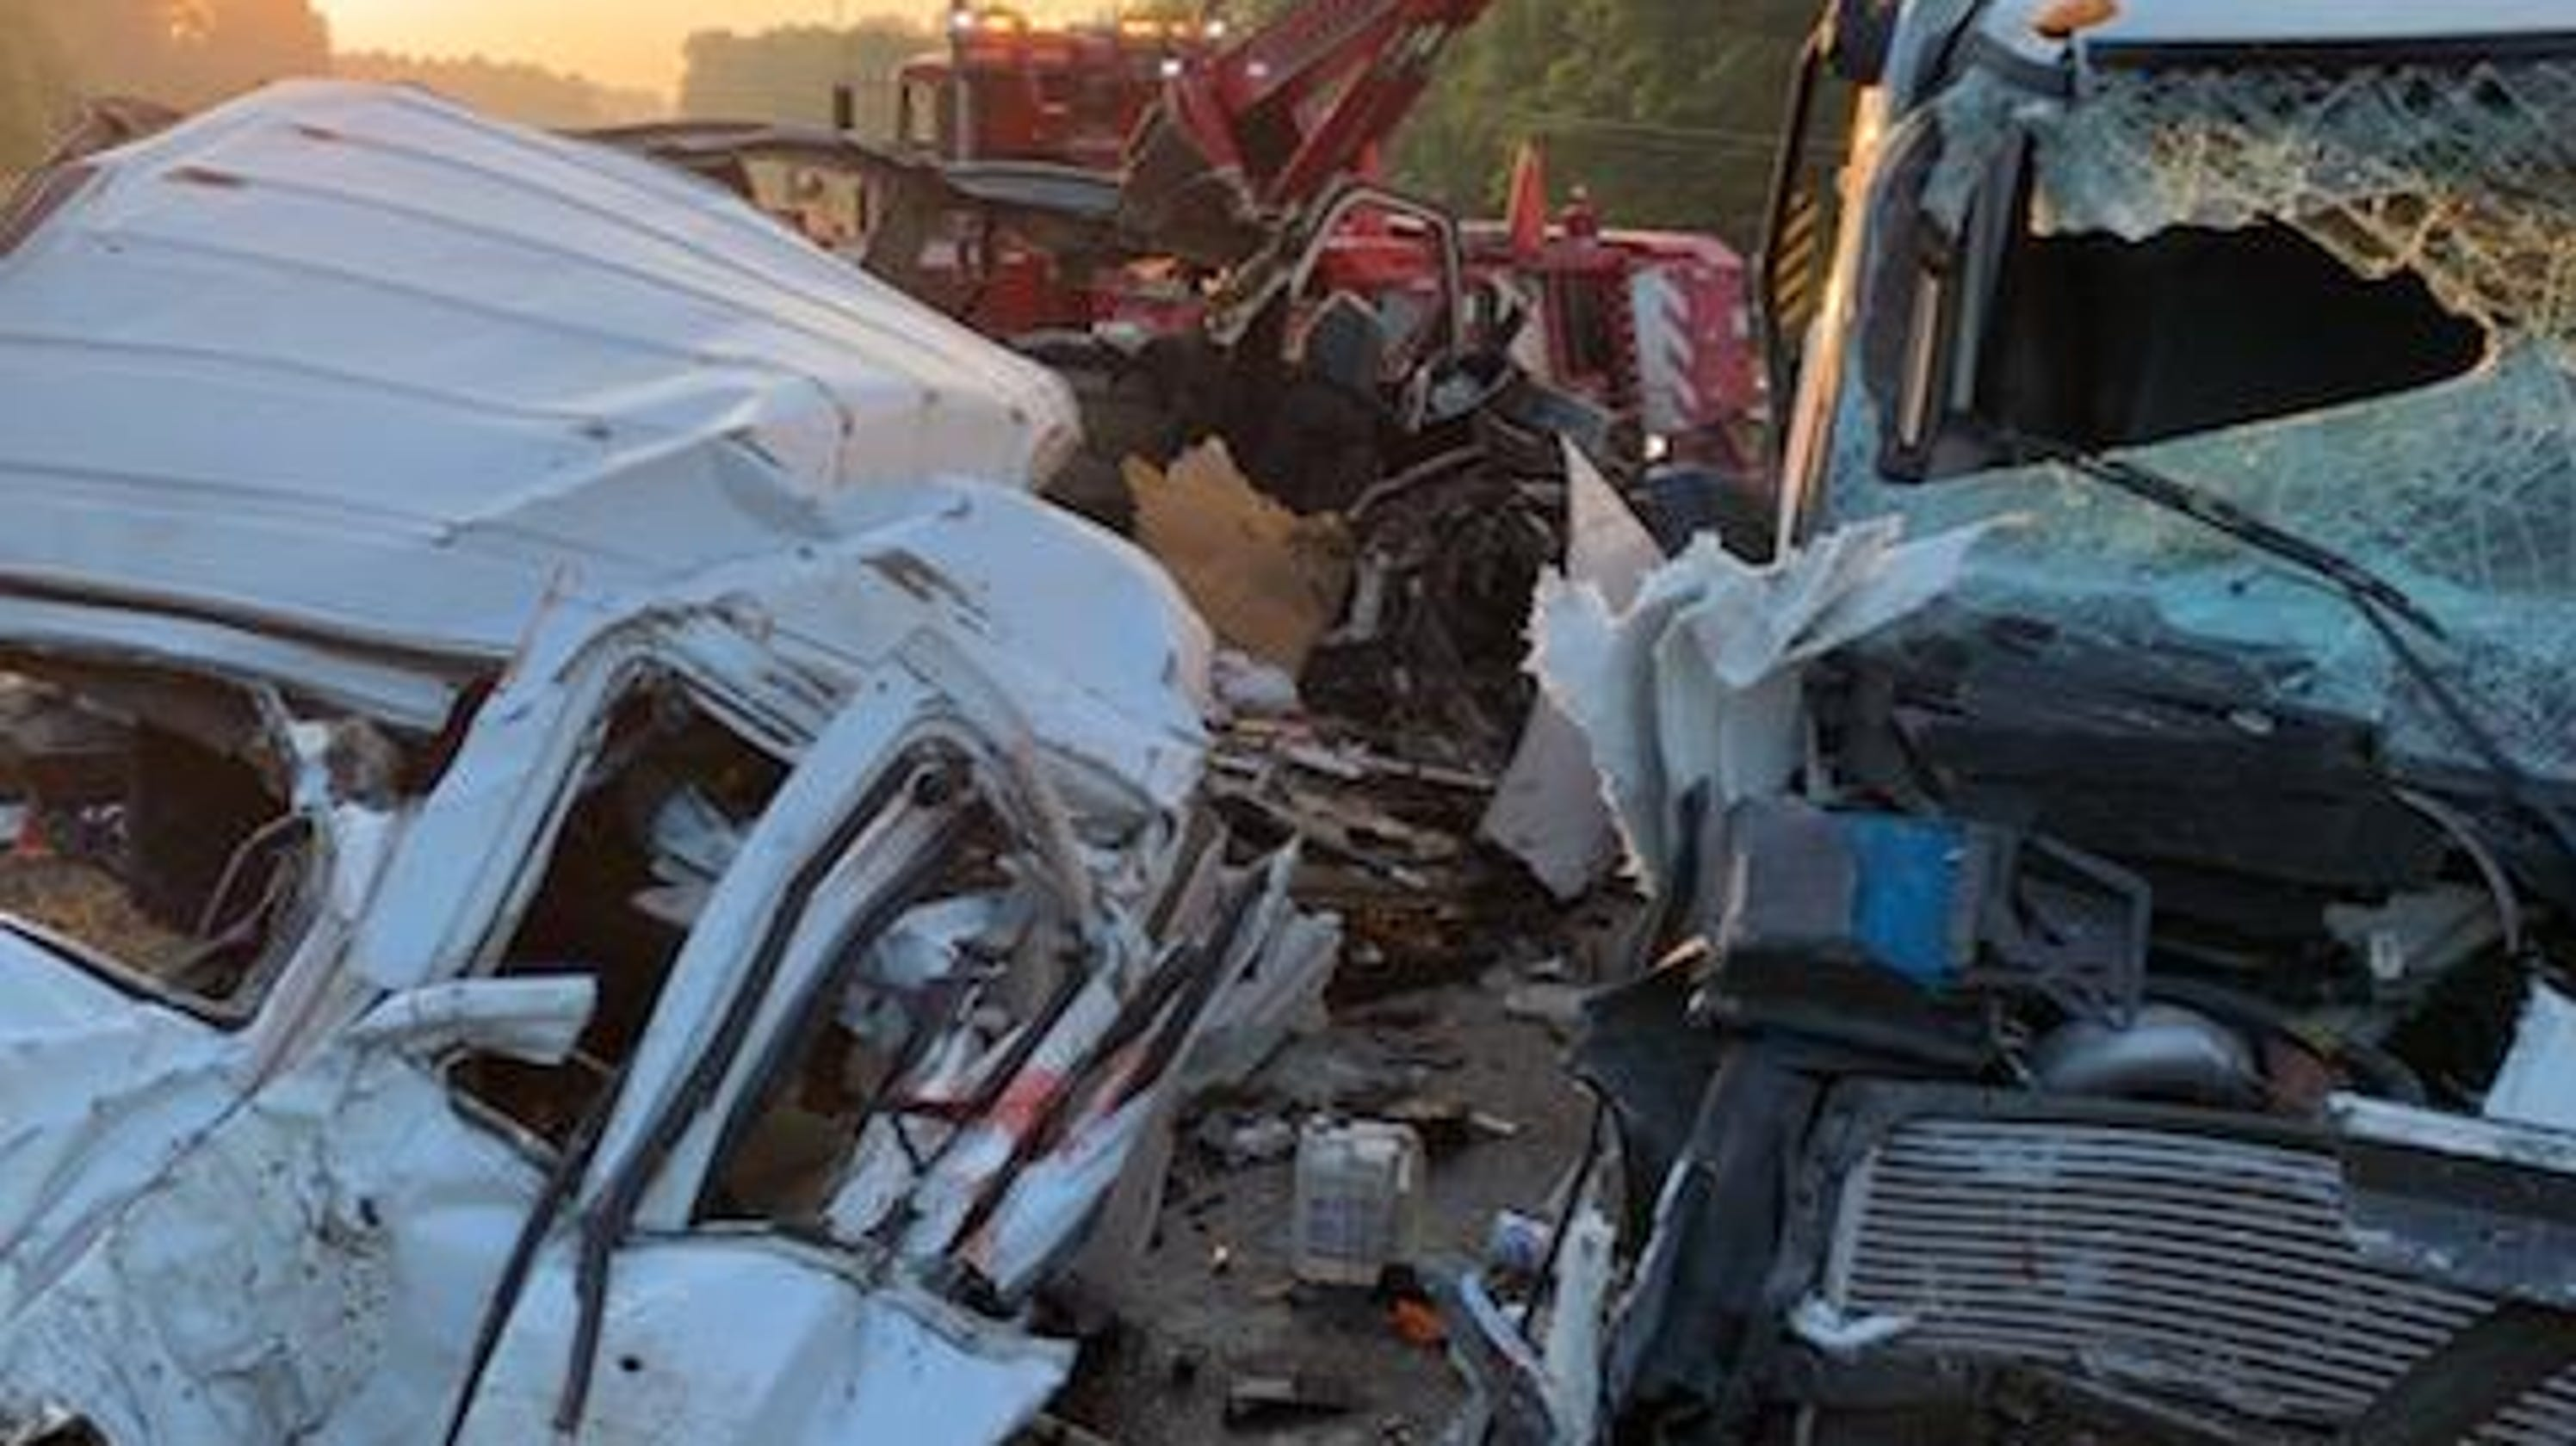 Mississippi crash: 8 killed in head-on collision